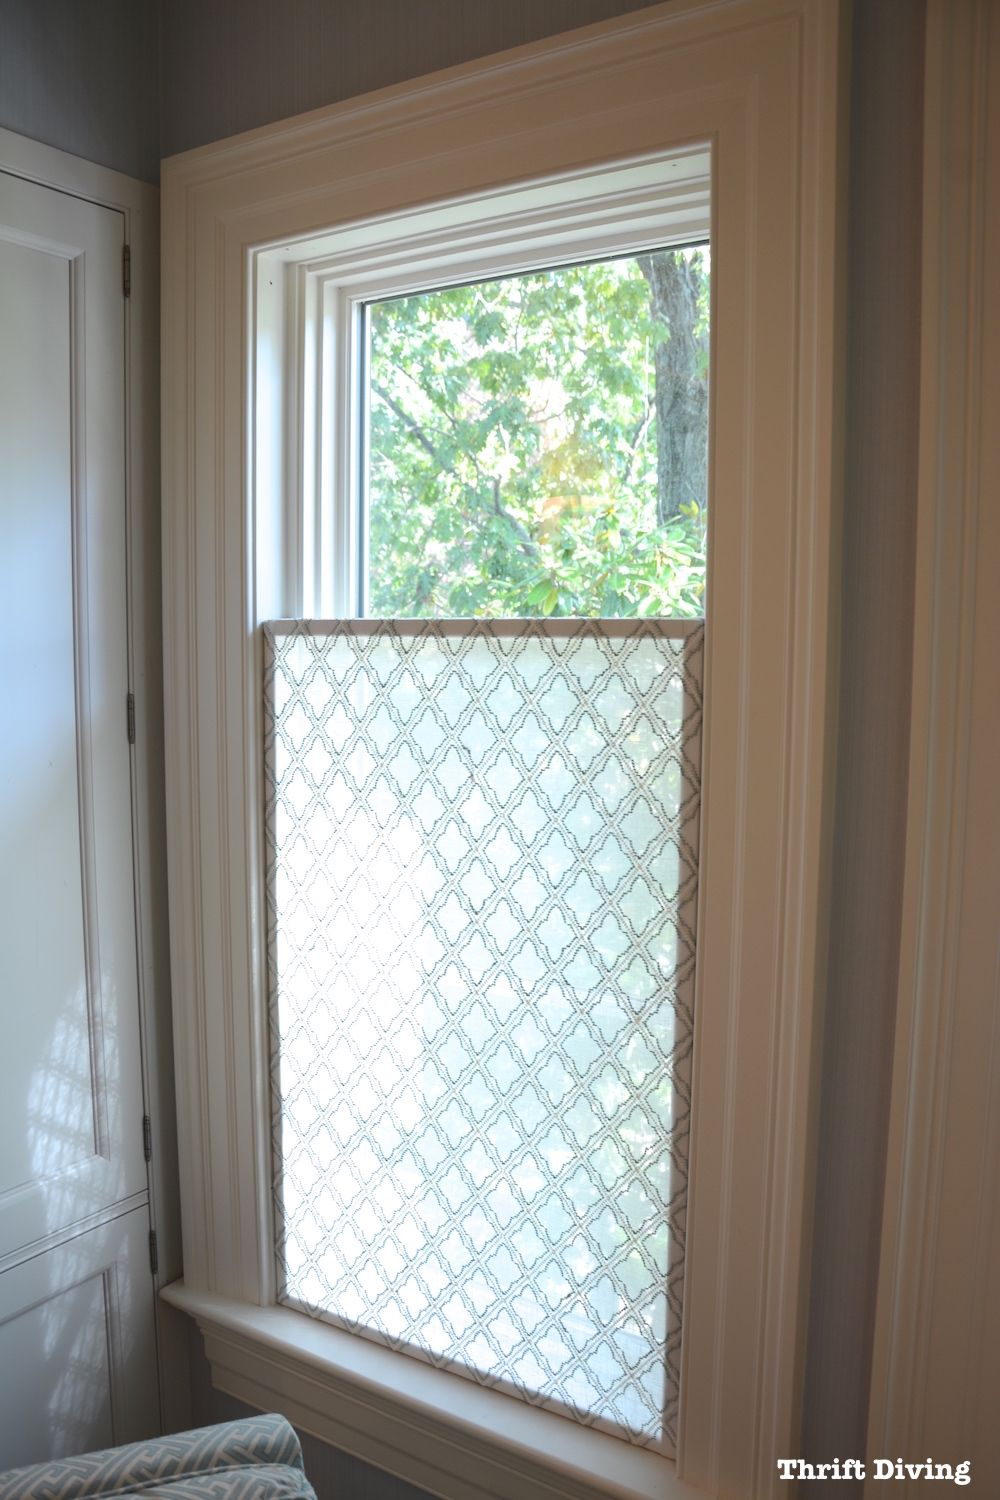 How to make a pretty diy window privacy screen bathroom for Window design bathroom